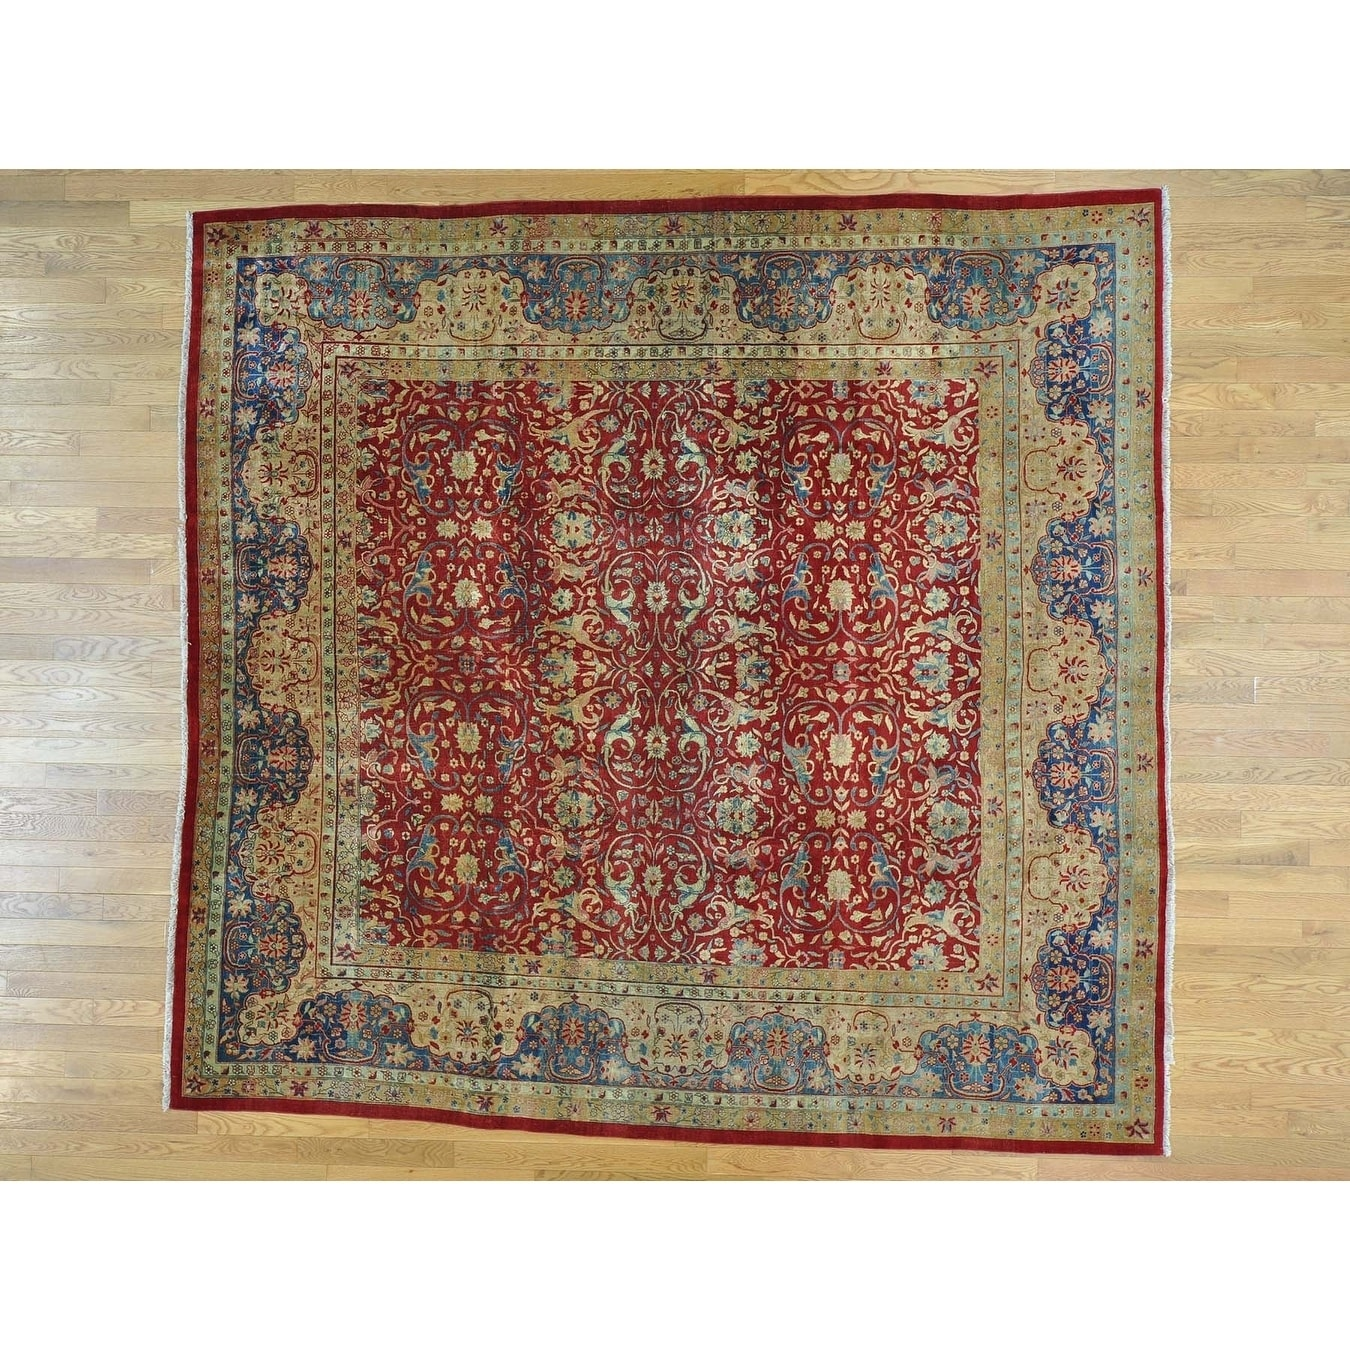 Hand Knotted Red Persian with Wool Oriental Rug - 910 x 101